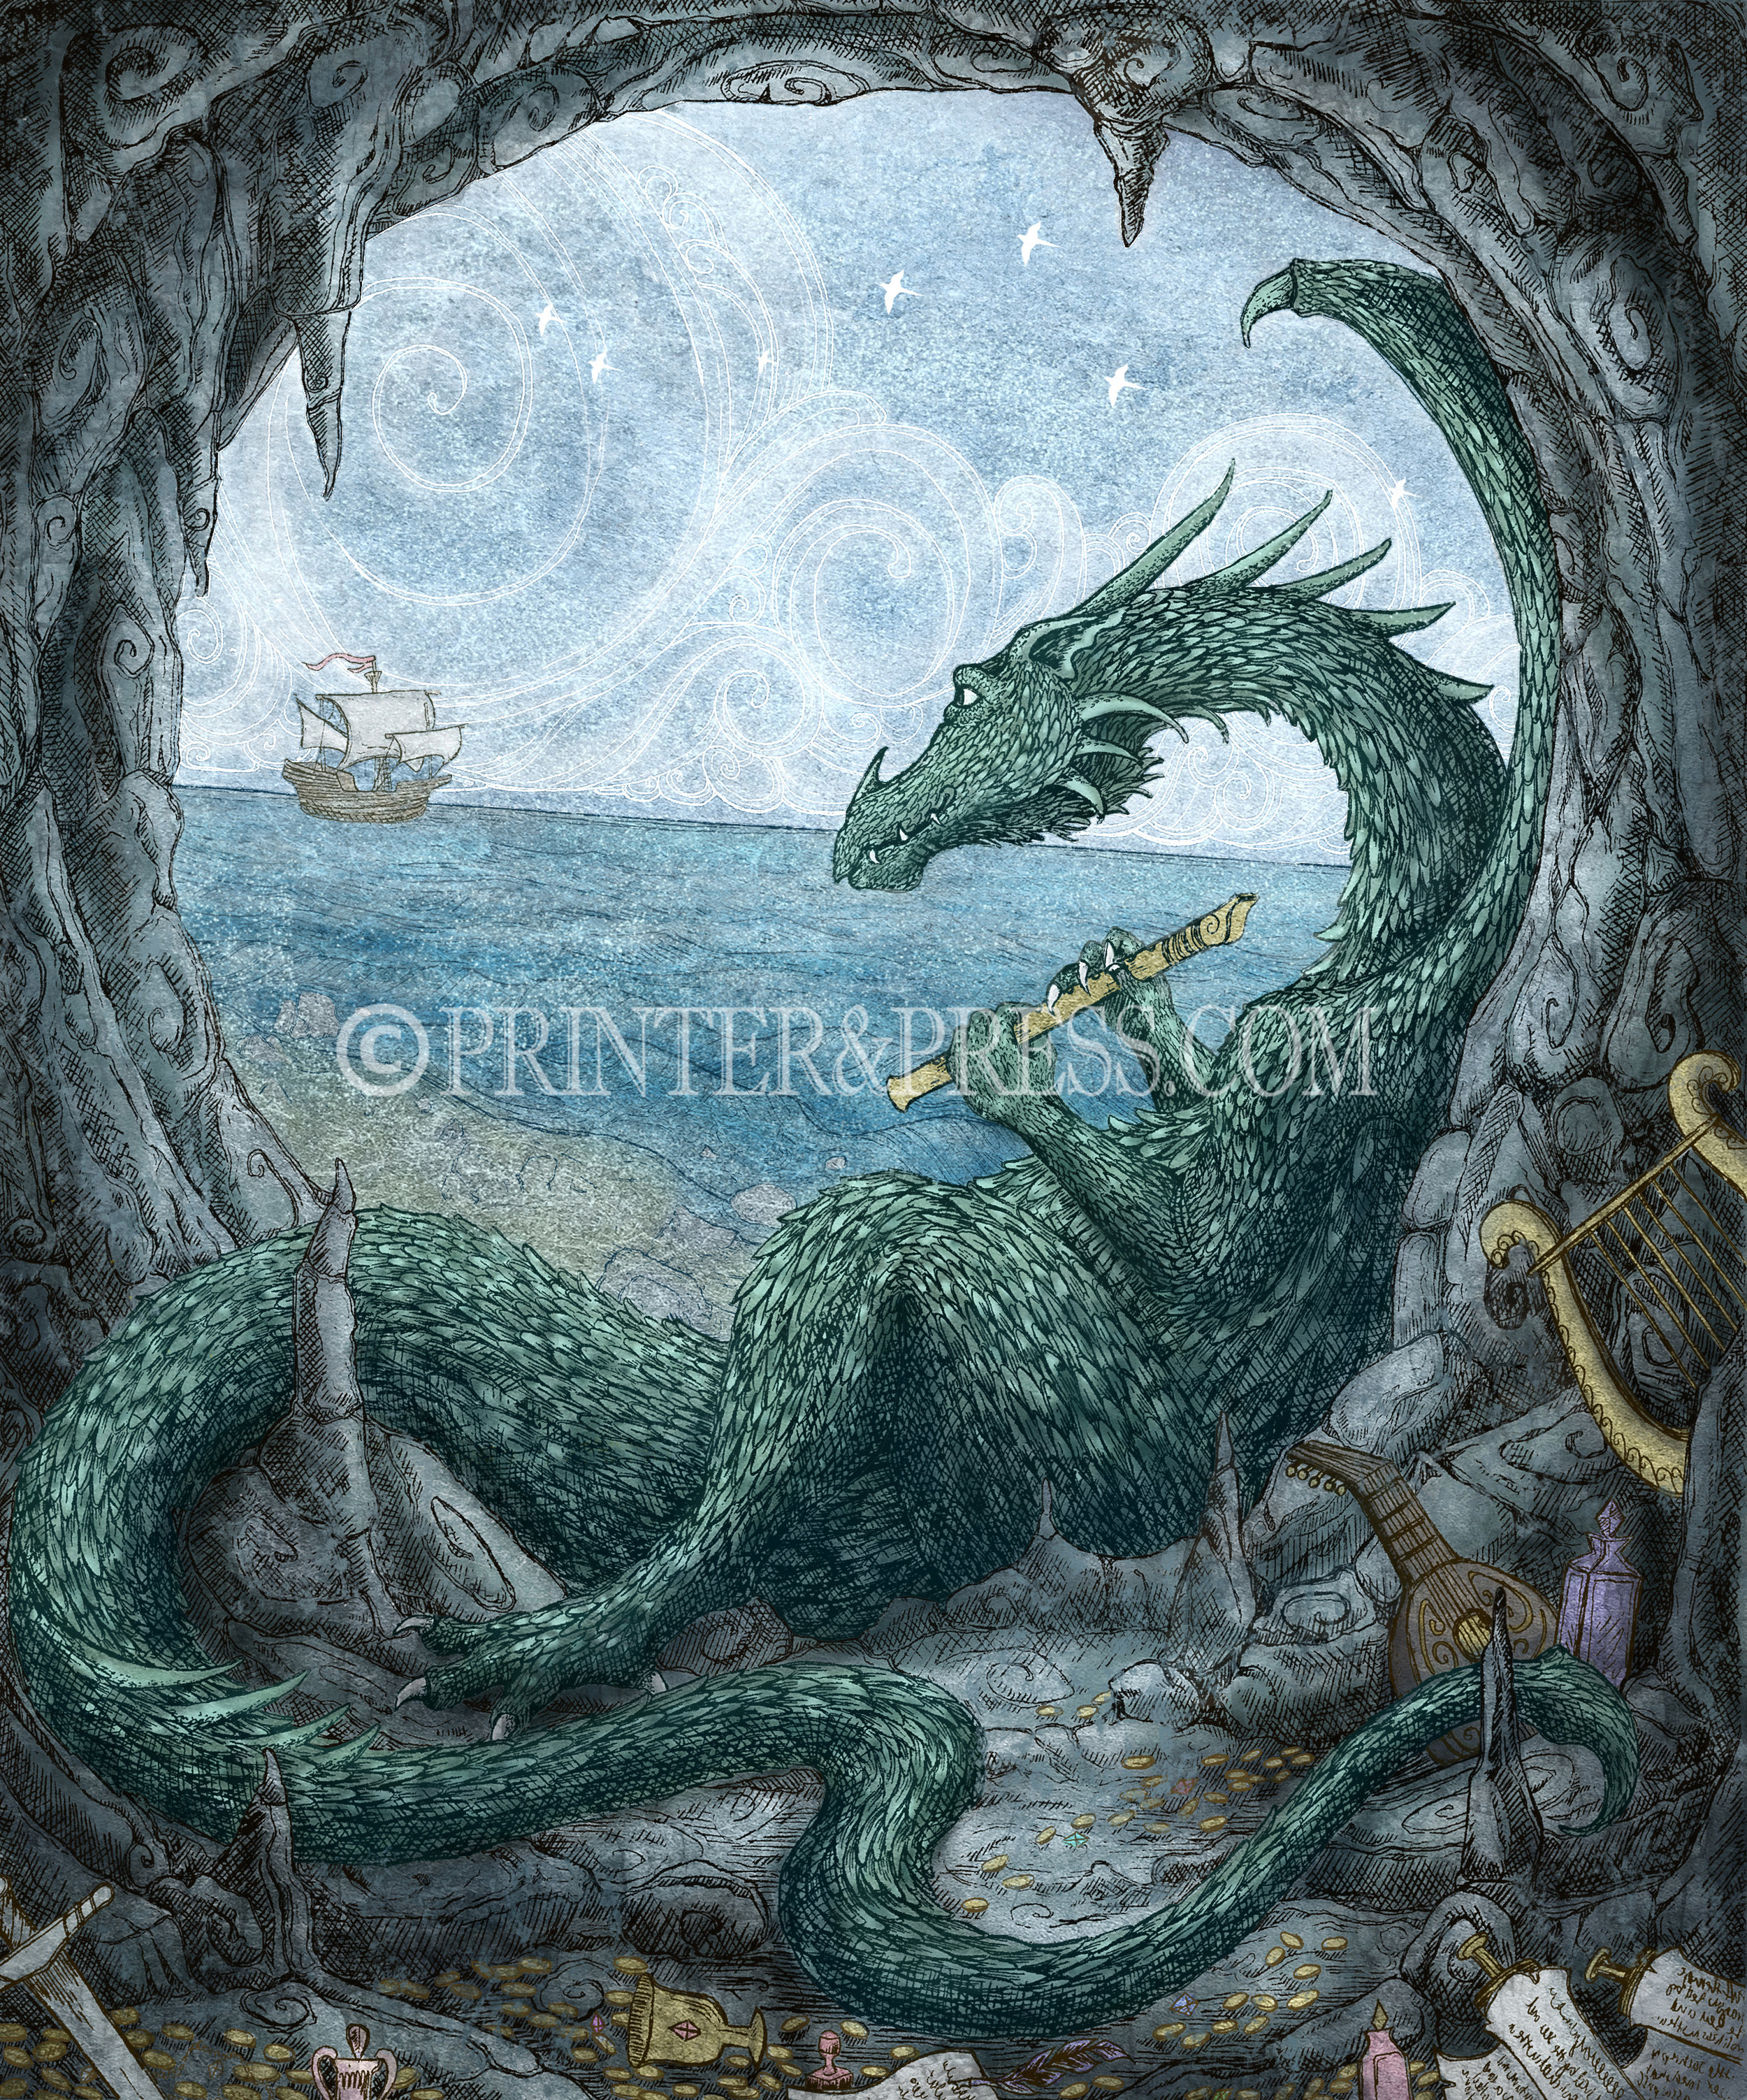 "This print was drawn from the song by Peter Paul and Mary, ""Puff the Magic Dragon"". Puff is patiently waiting in his cave by the sea, filled with musical instruments and magic. This piece was originally made as an intaglio etching, and has been scanned and digitally colored by me to make this colorful version. I had to try multiple instruments in his hands before deciding on the recorder. The rest of the instruments blocked his face! So I decided he would perhaps be a hoarder of musical instruments, as any good dragon is."